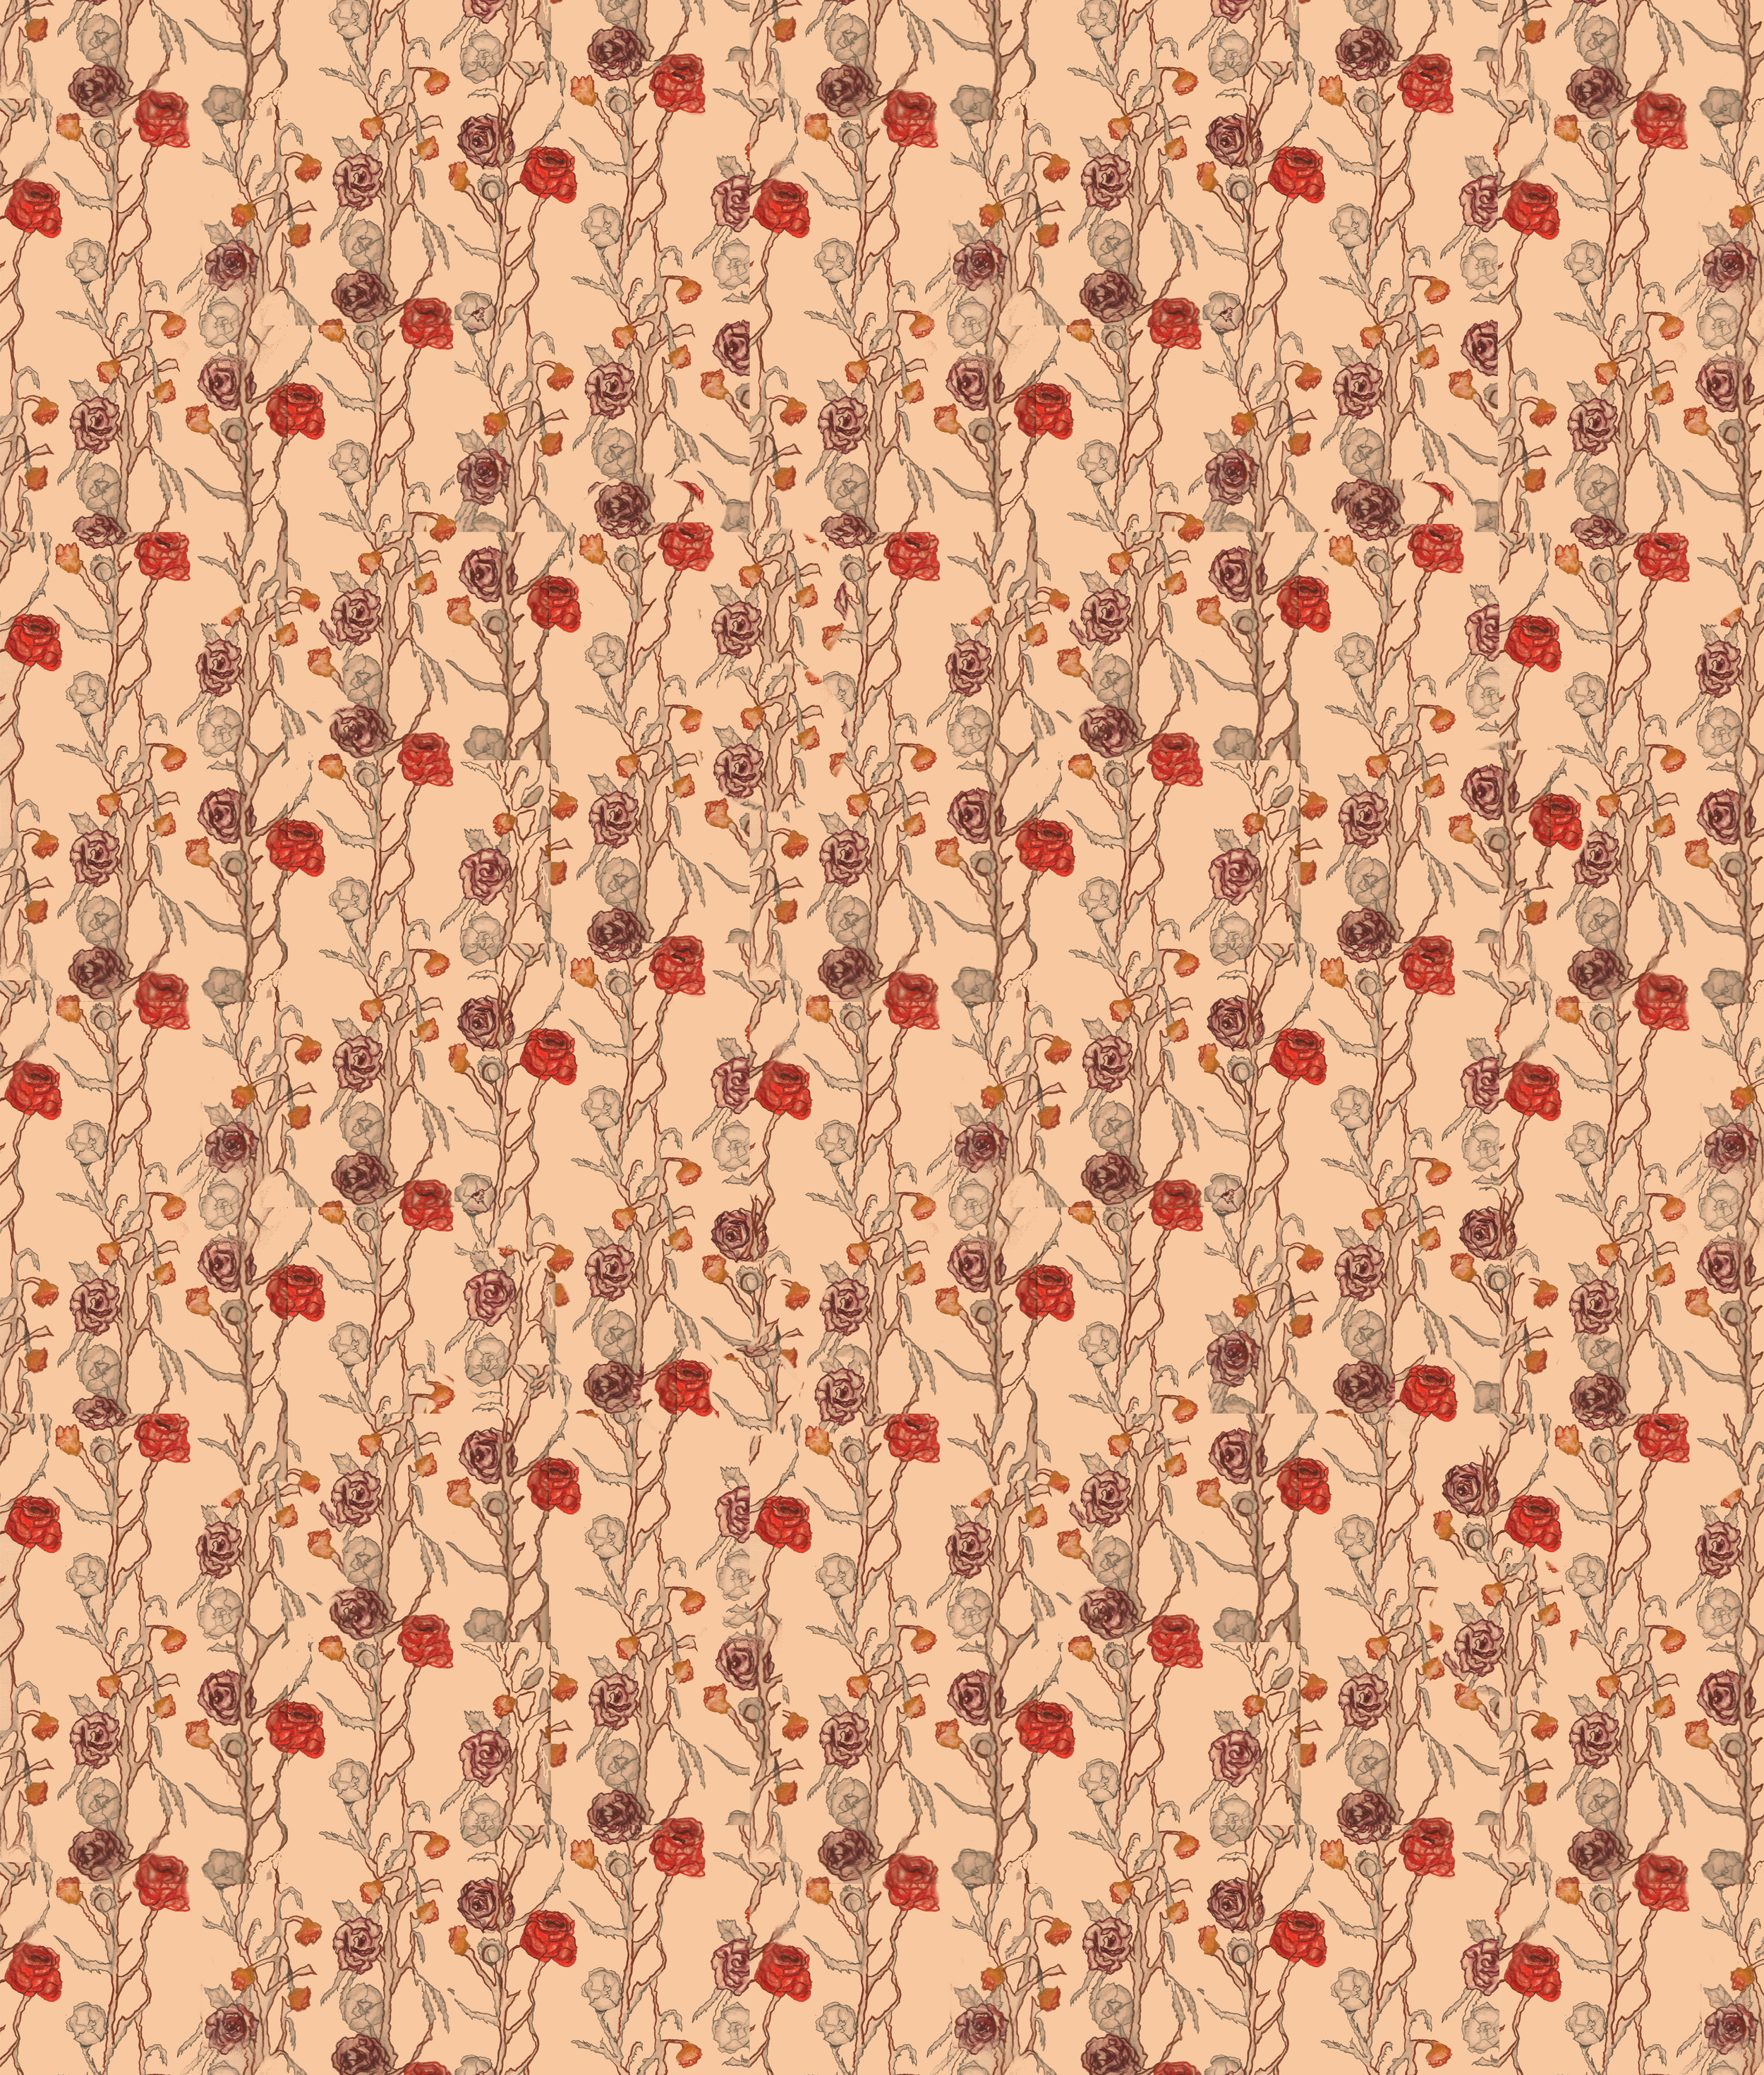 Antique style repeating floral vine pattern.